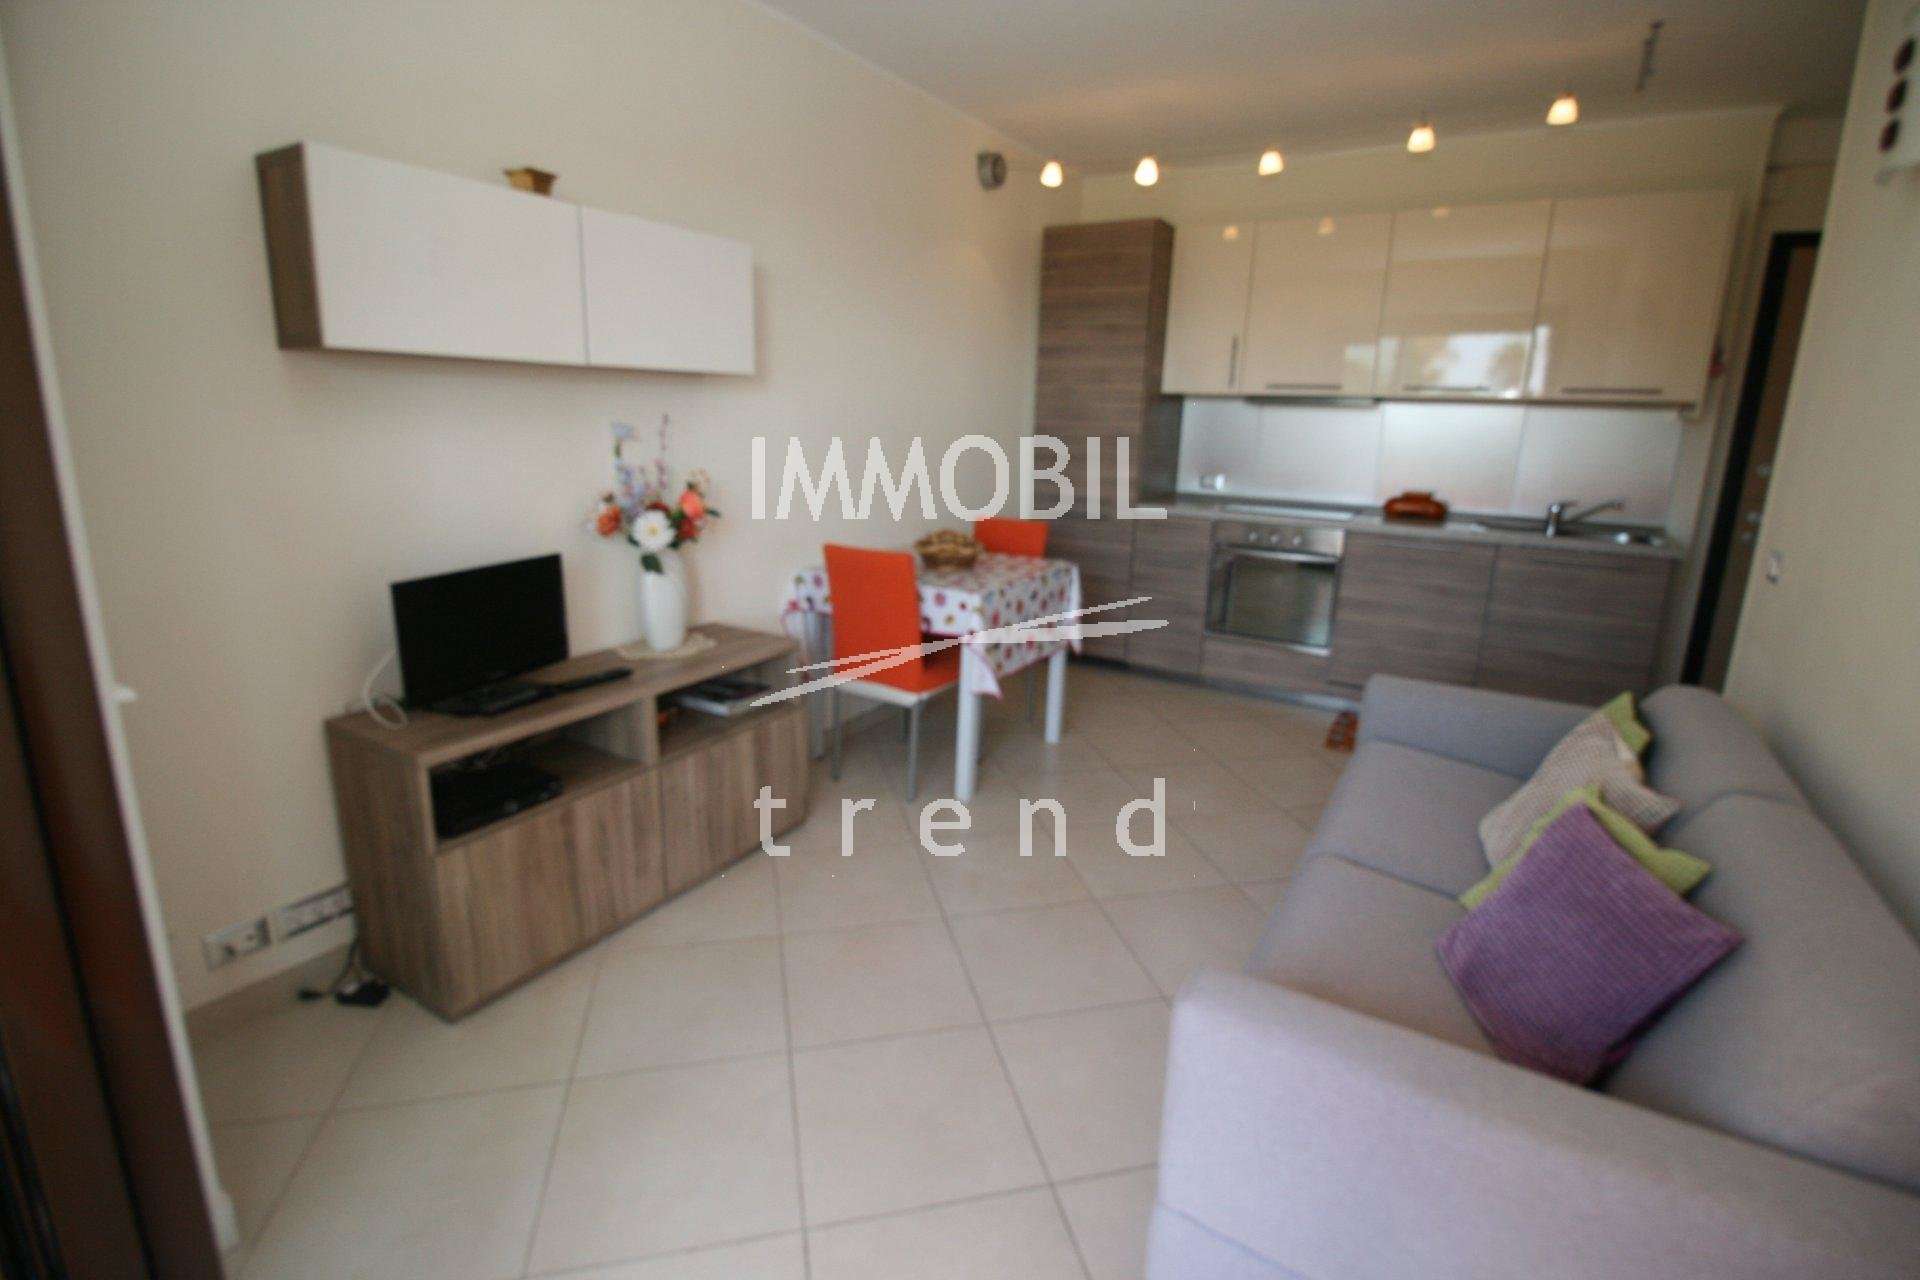 ROQUEBRUNE CAP MARTIN REAL ESTATE - 1 bedroom apartment with terrace cellar and private parking for sale